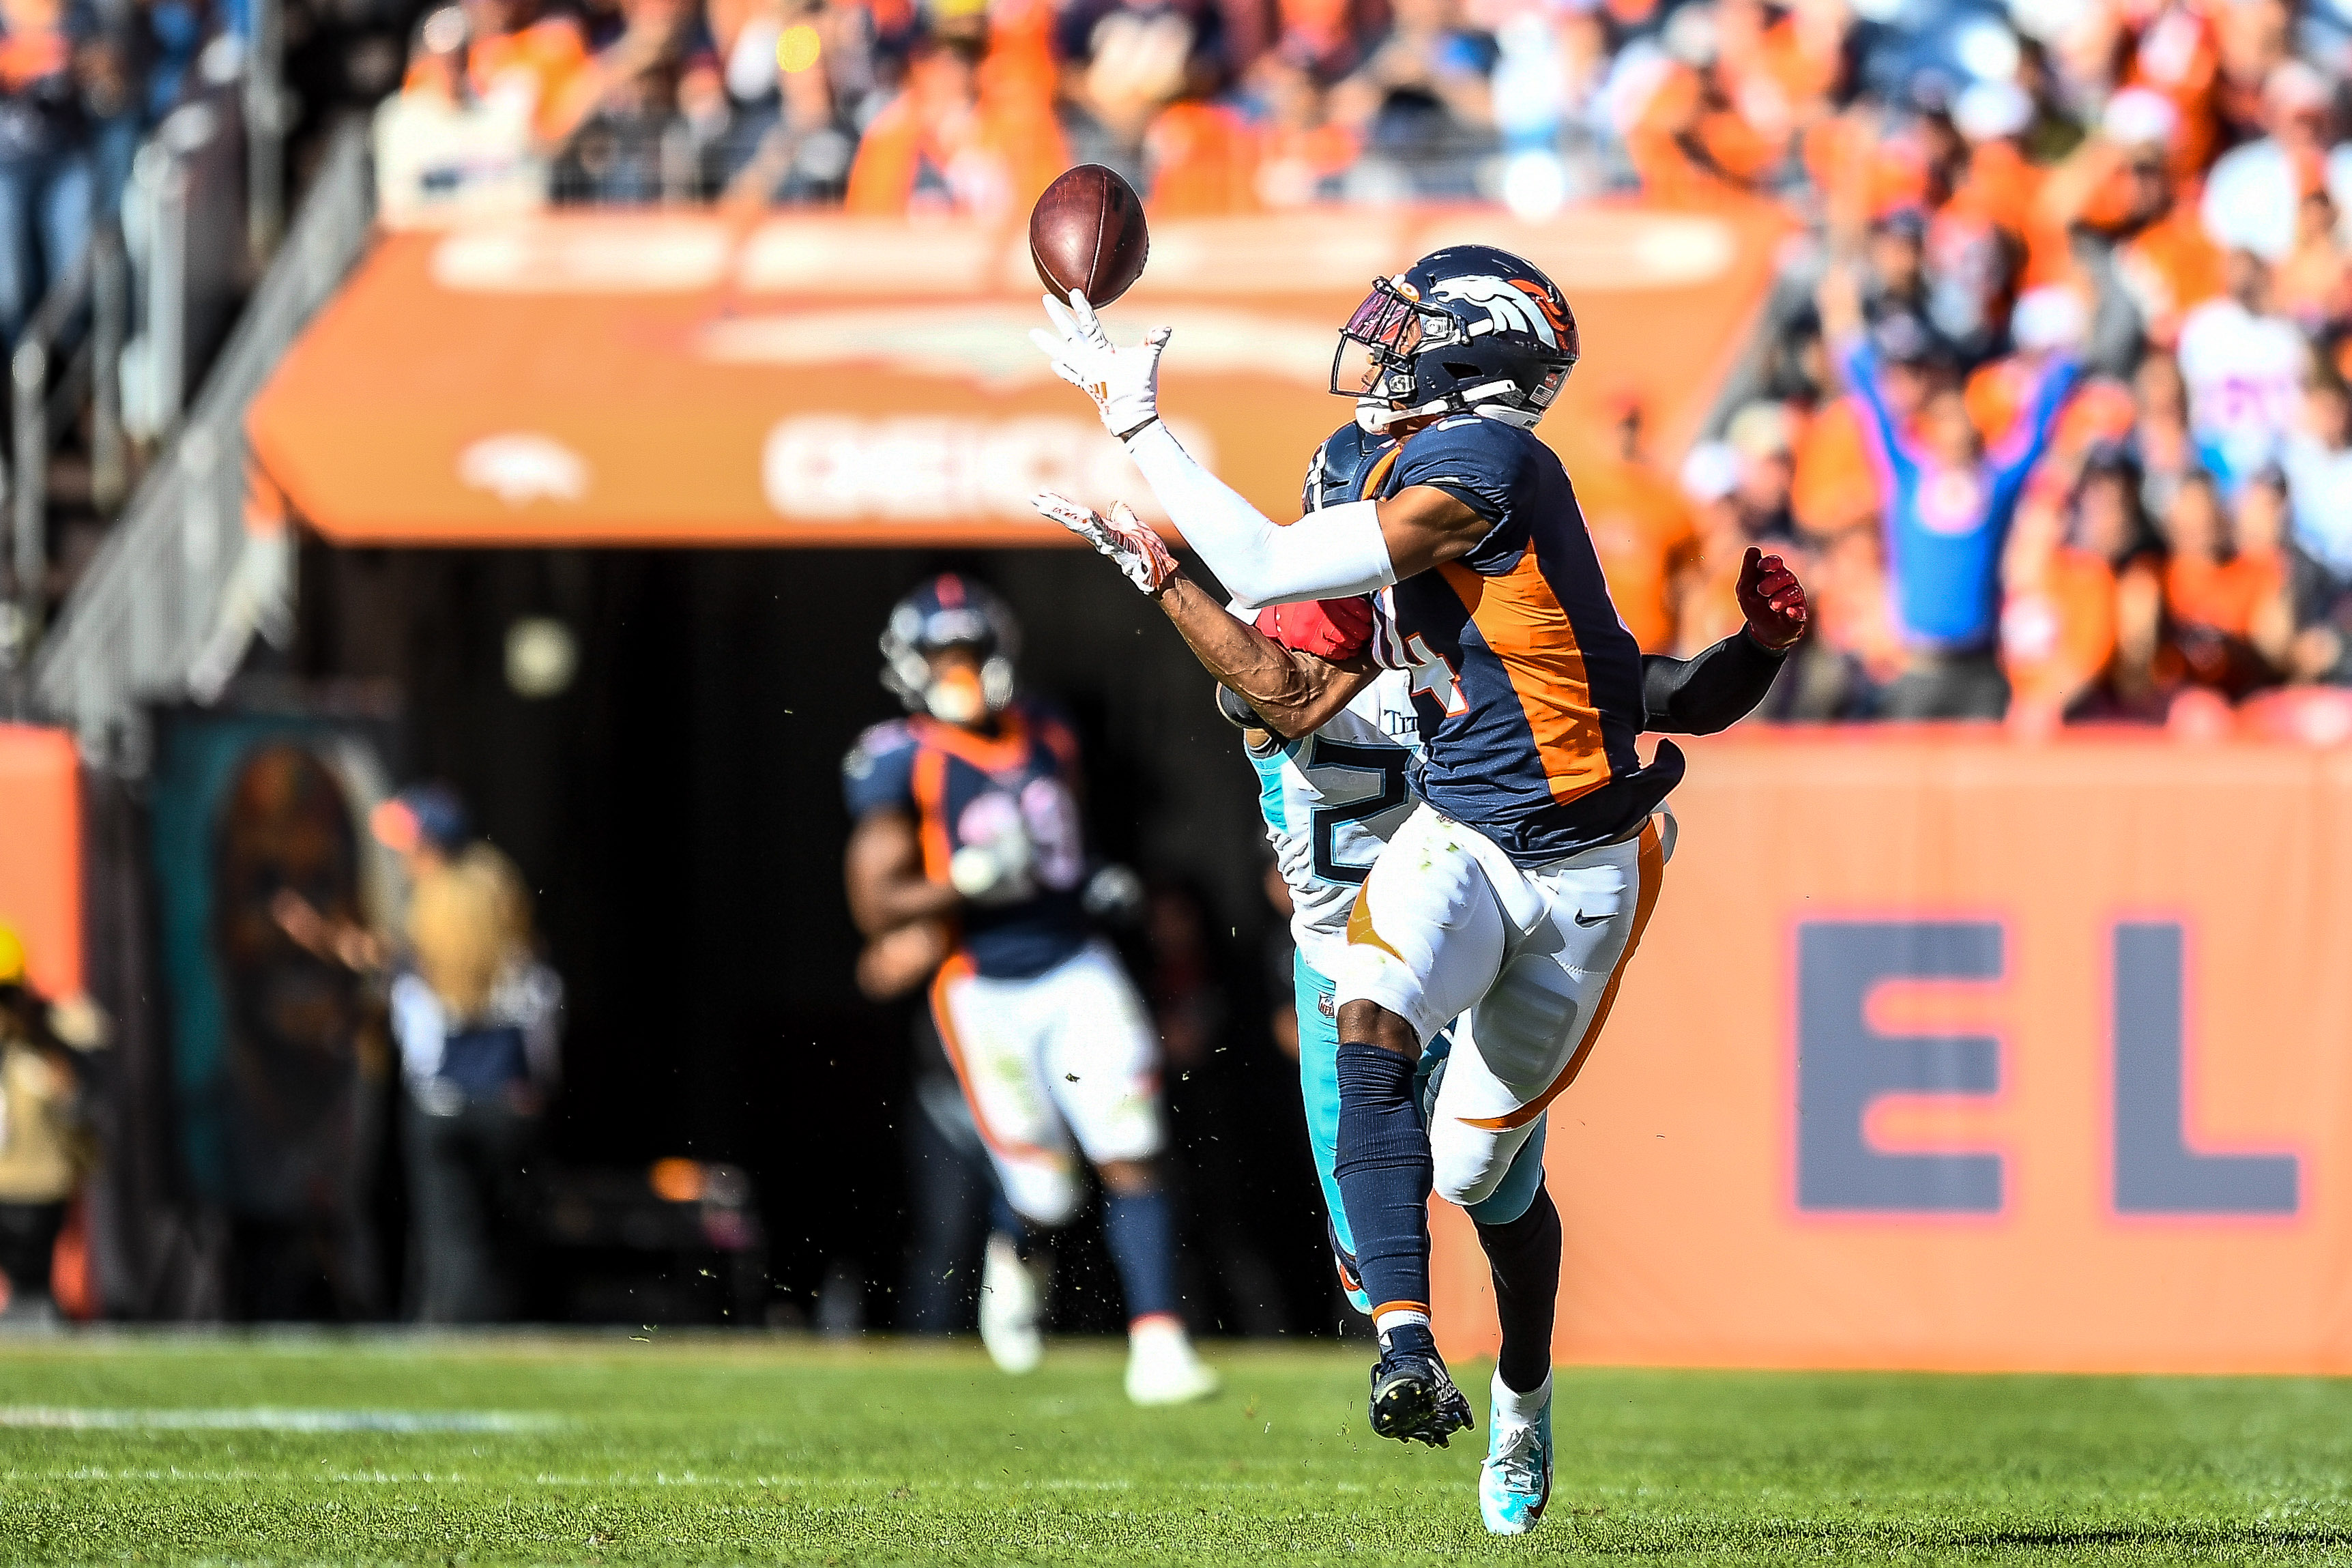 Courtland Sutton injures right shoulder during practice | KRQE News 13